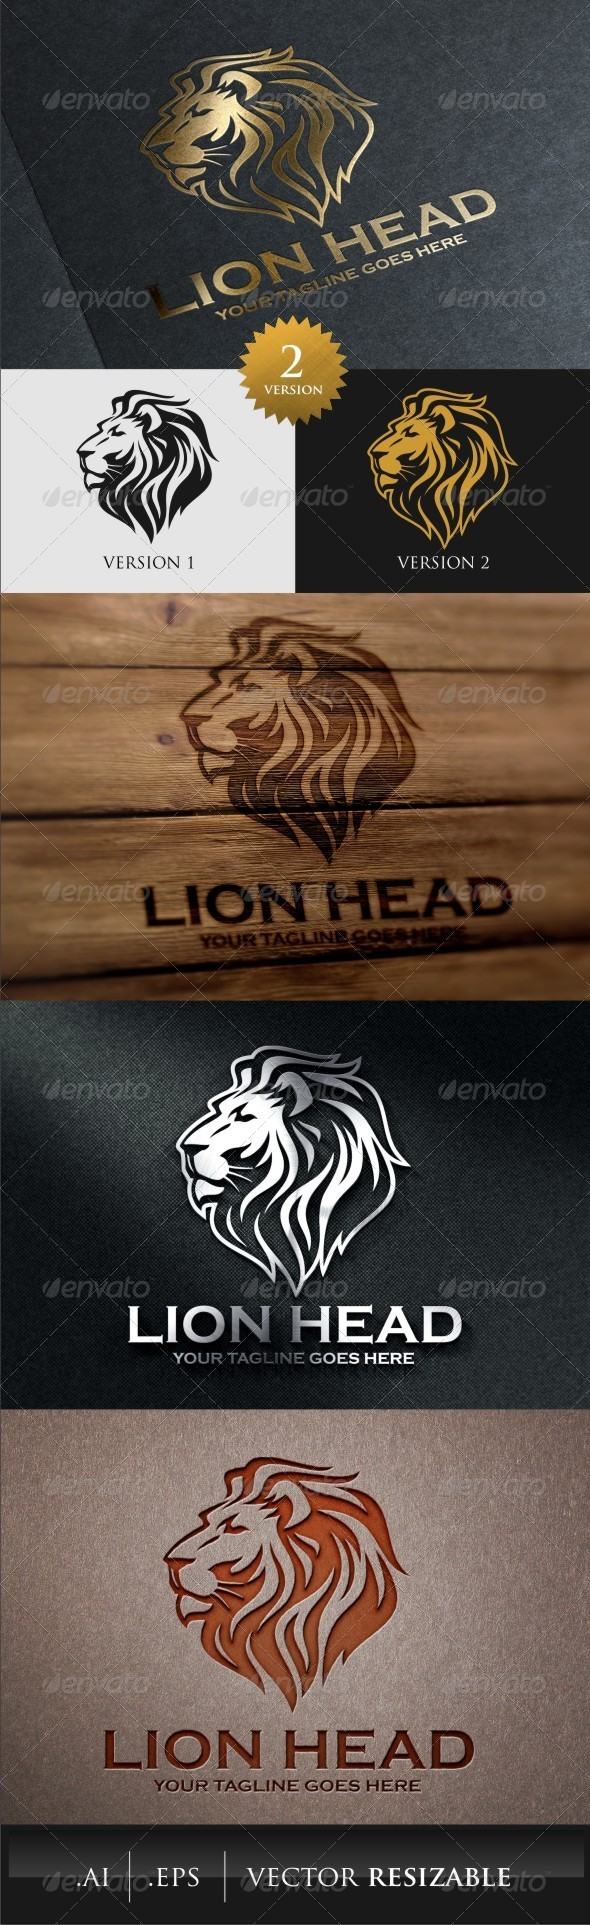 GraphicRiver Lion Head Logo Template 7871118